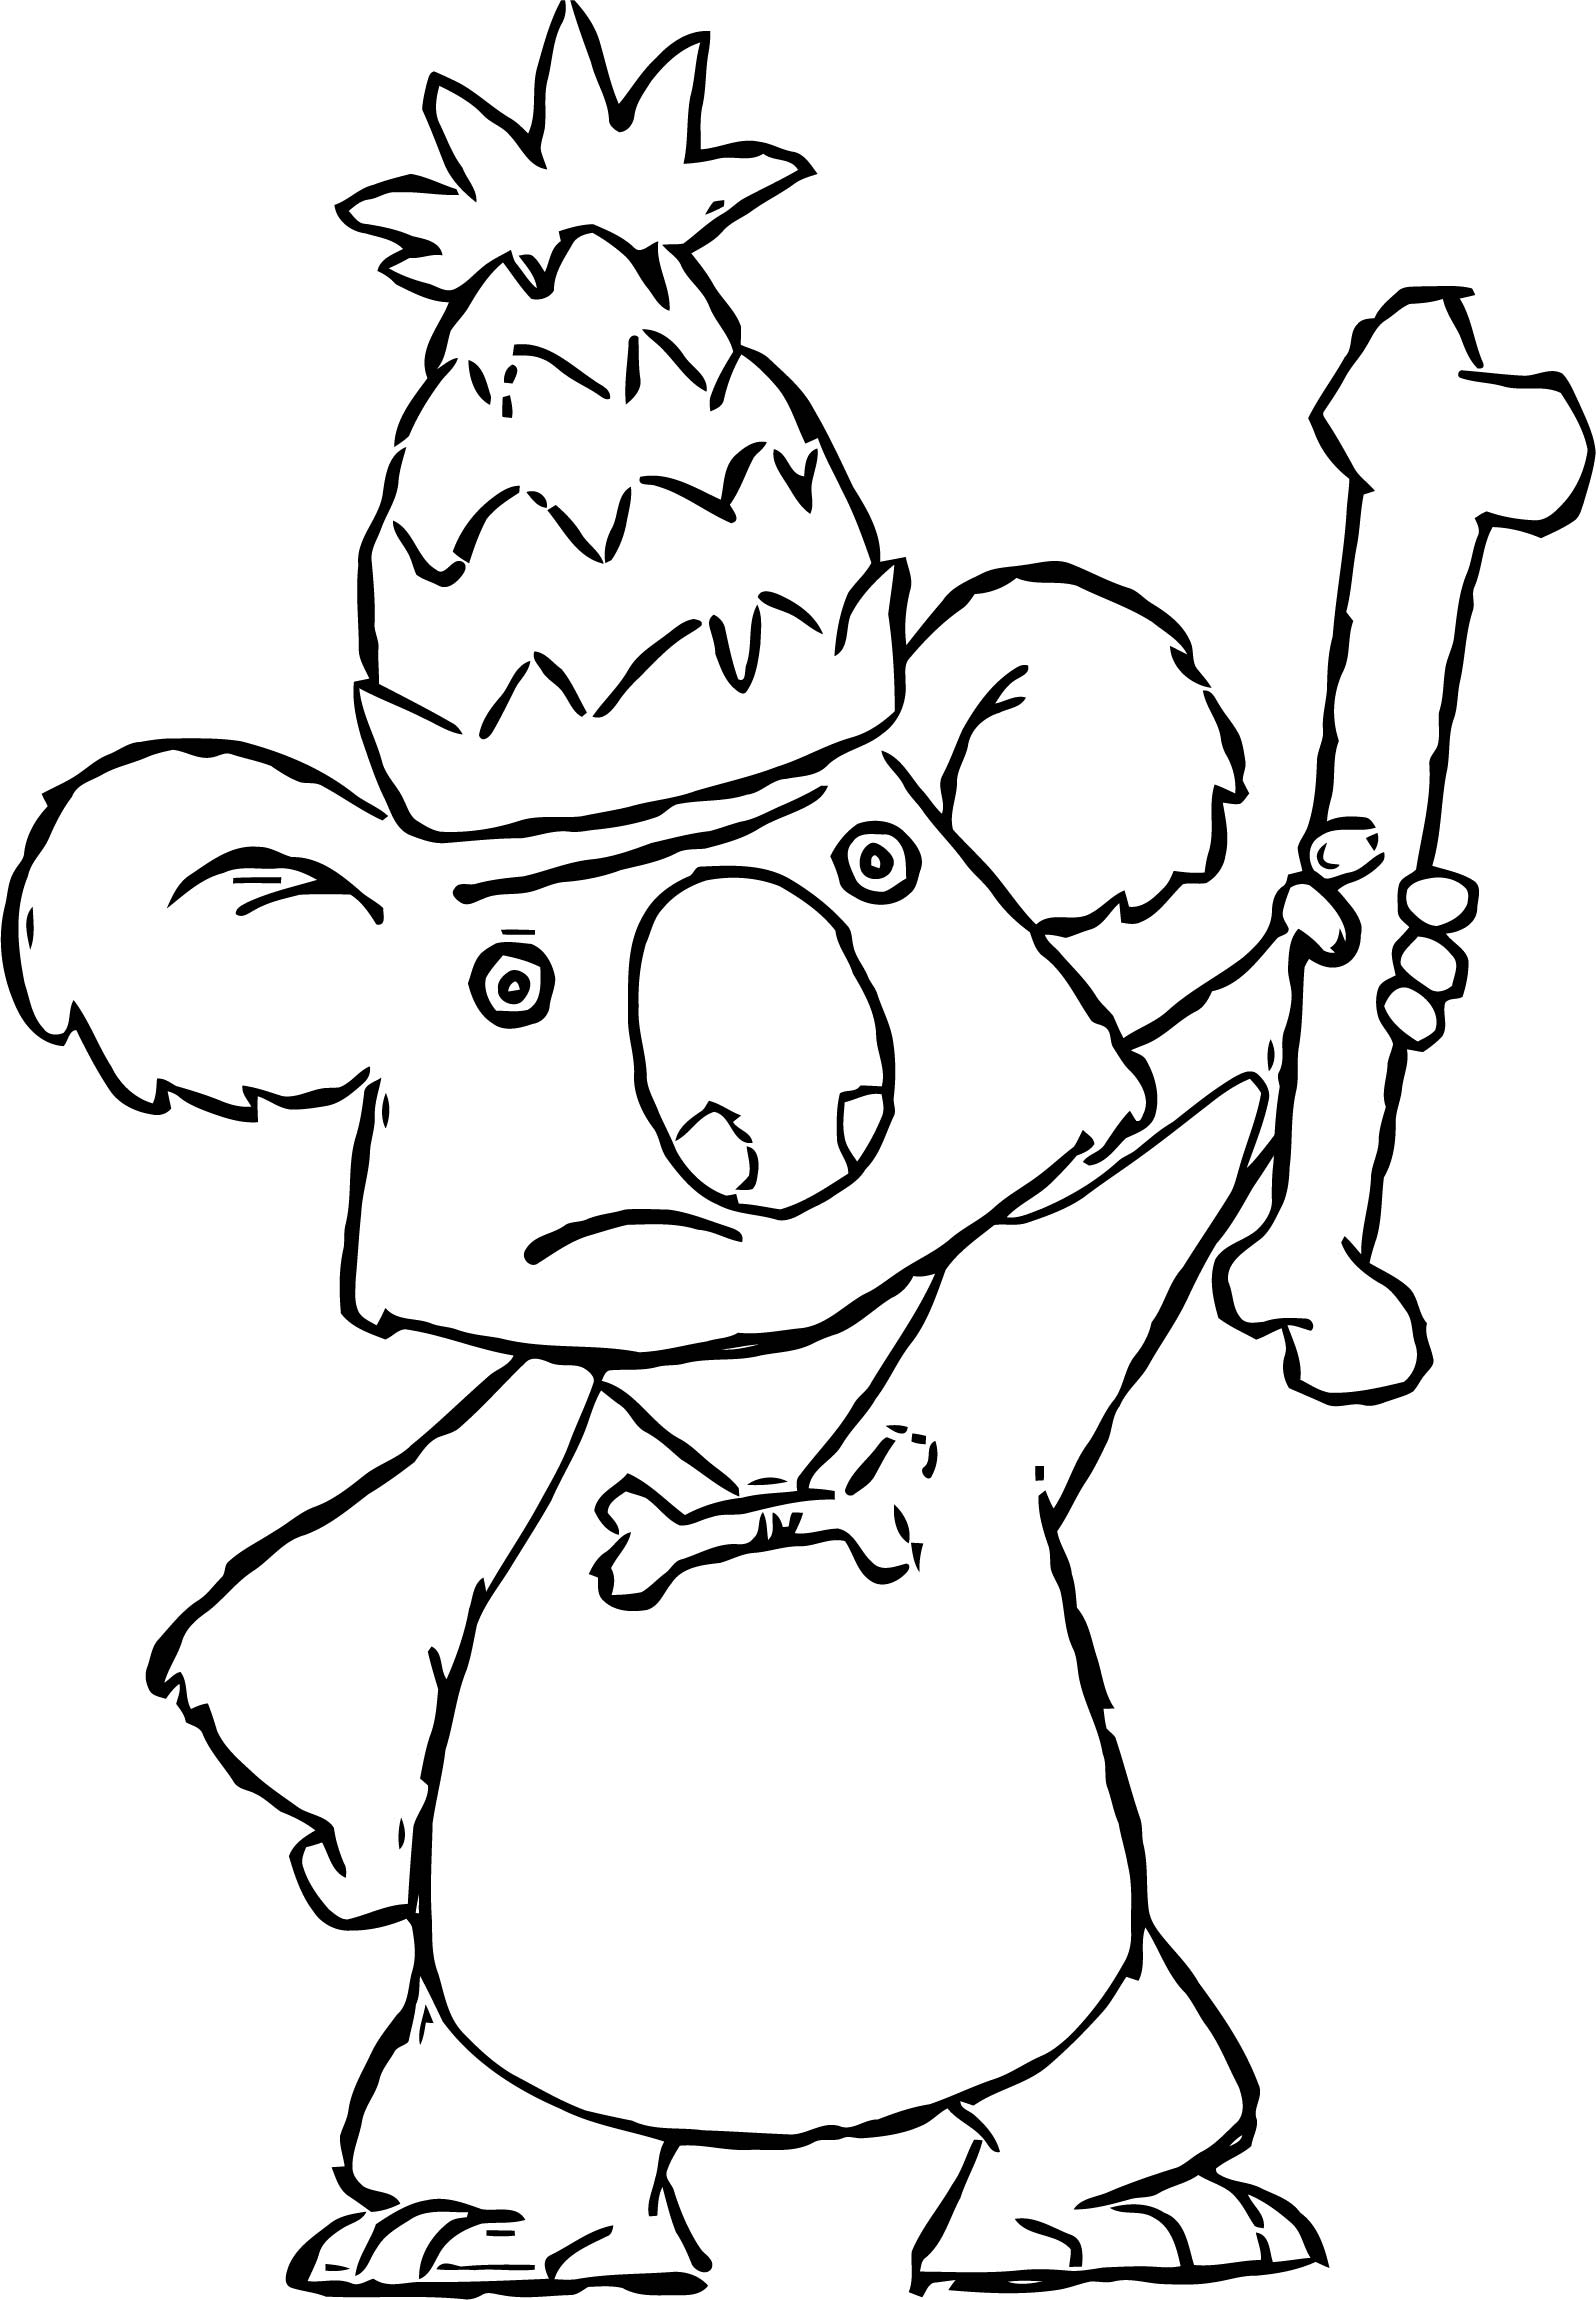 Disney The Wild Coloring Pages 03